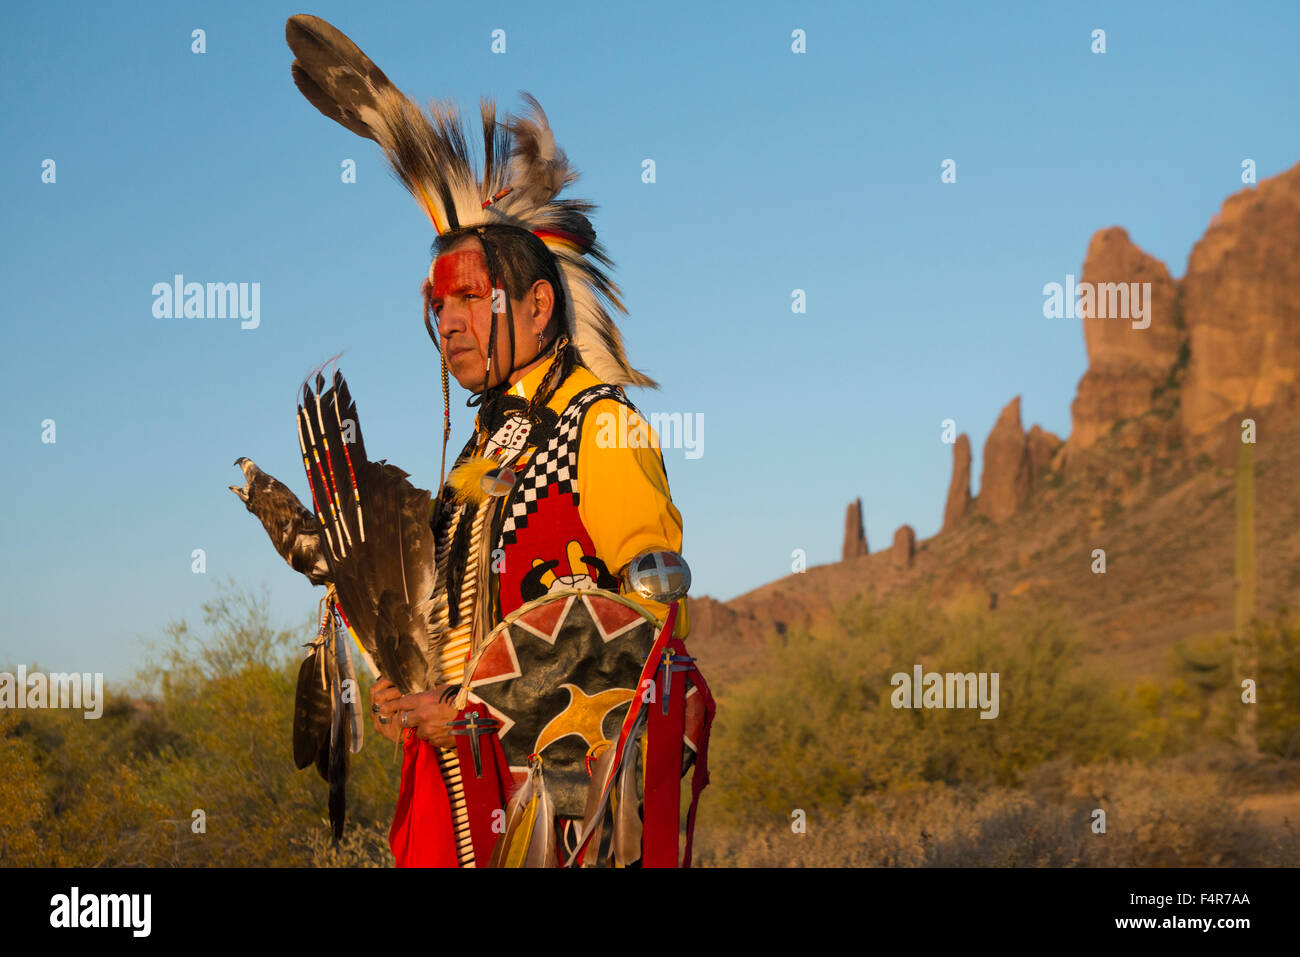 USA, United States, America, Arizona, Desert Southwest, Indian, regalia, warrior, man, cliffs, portrait, Jim Yellowhawk, - Stock Image